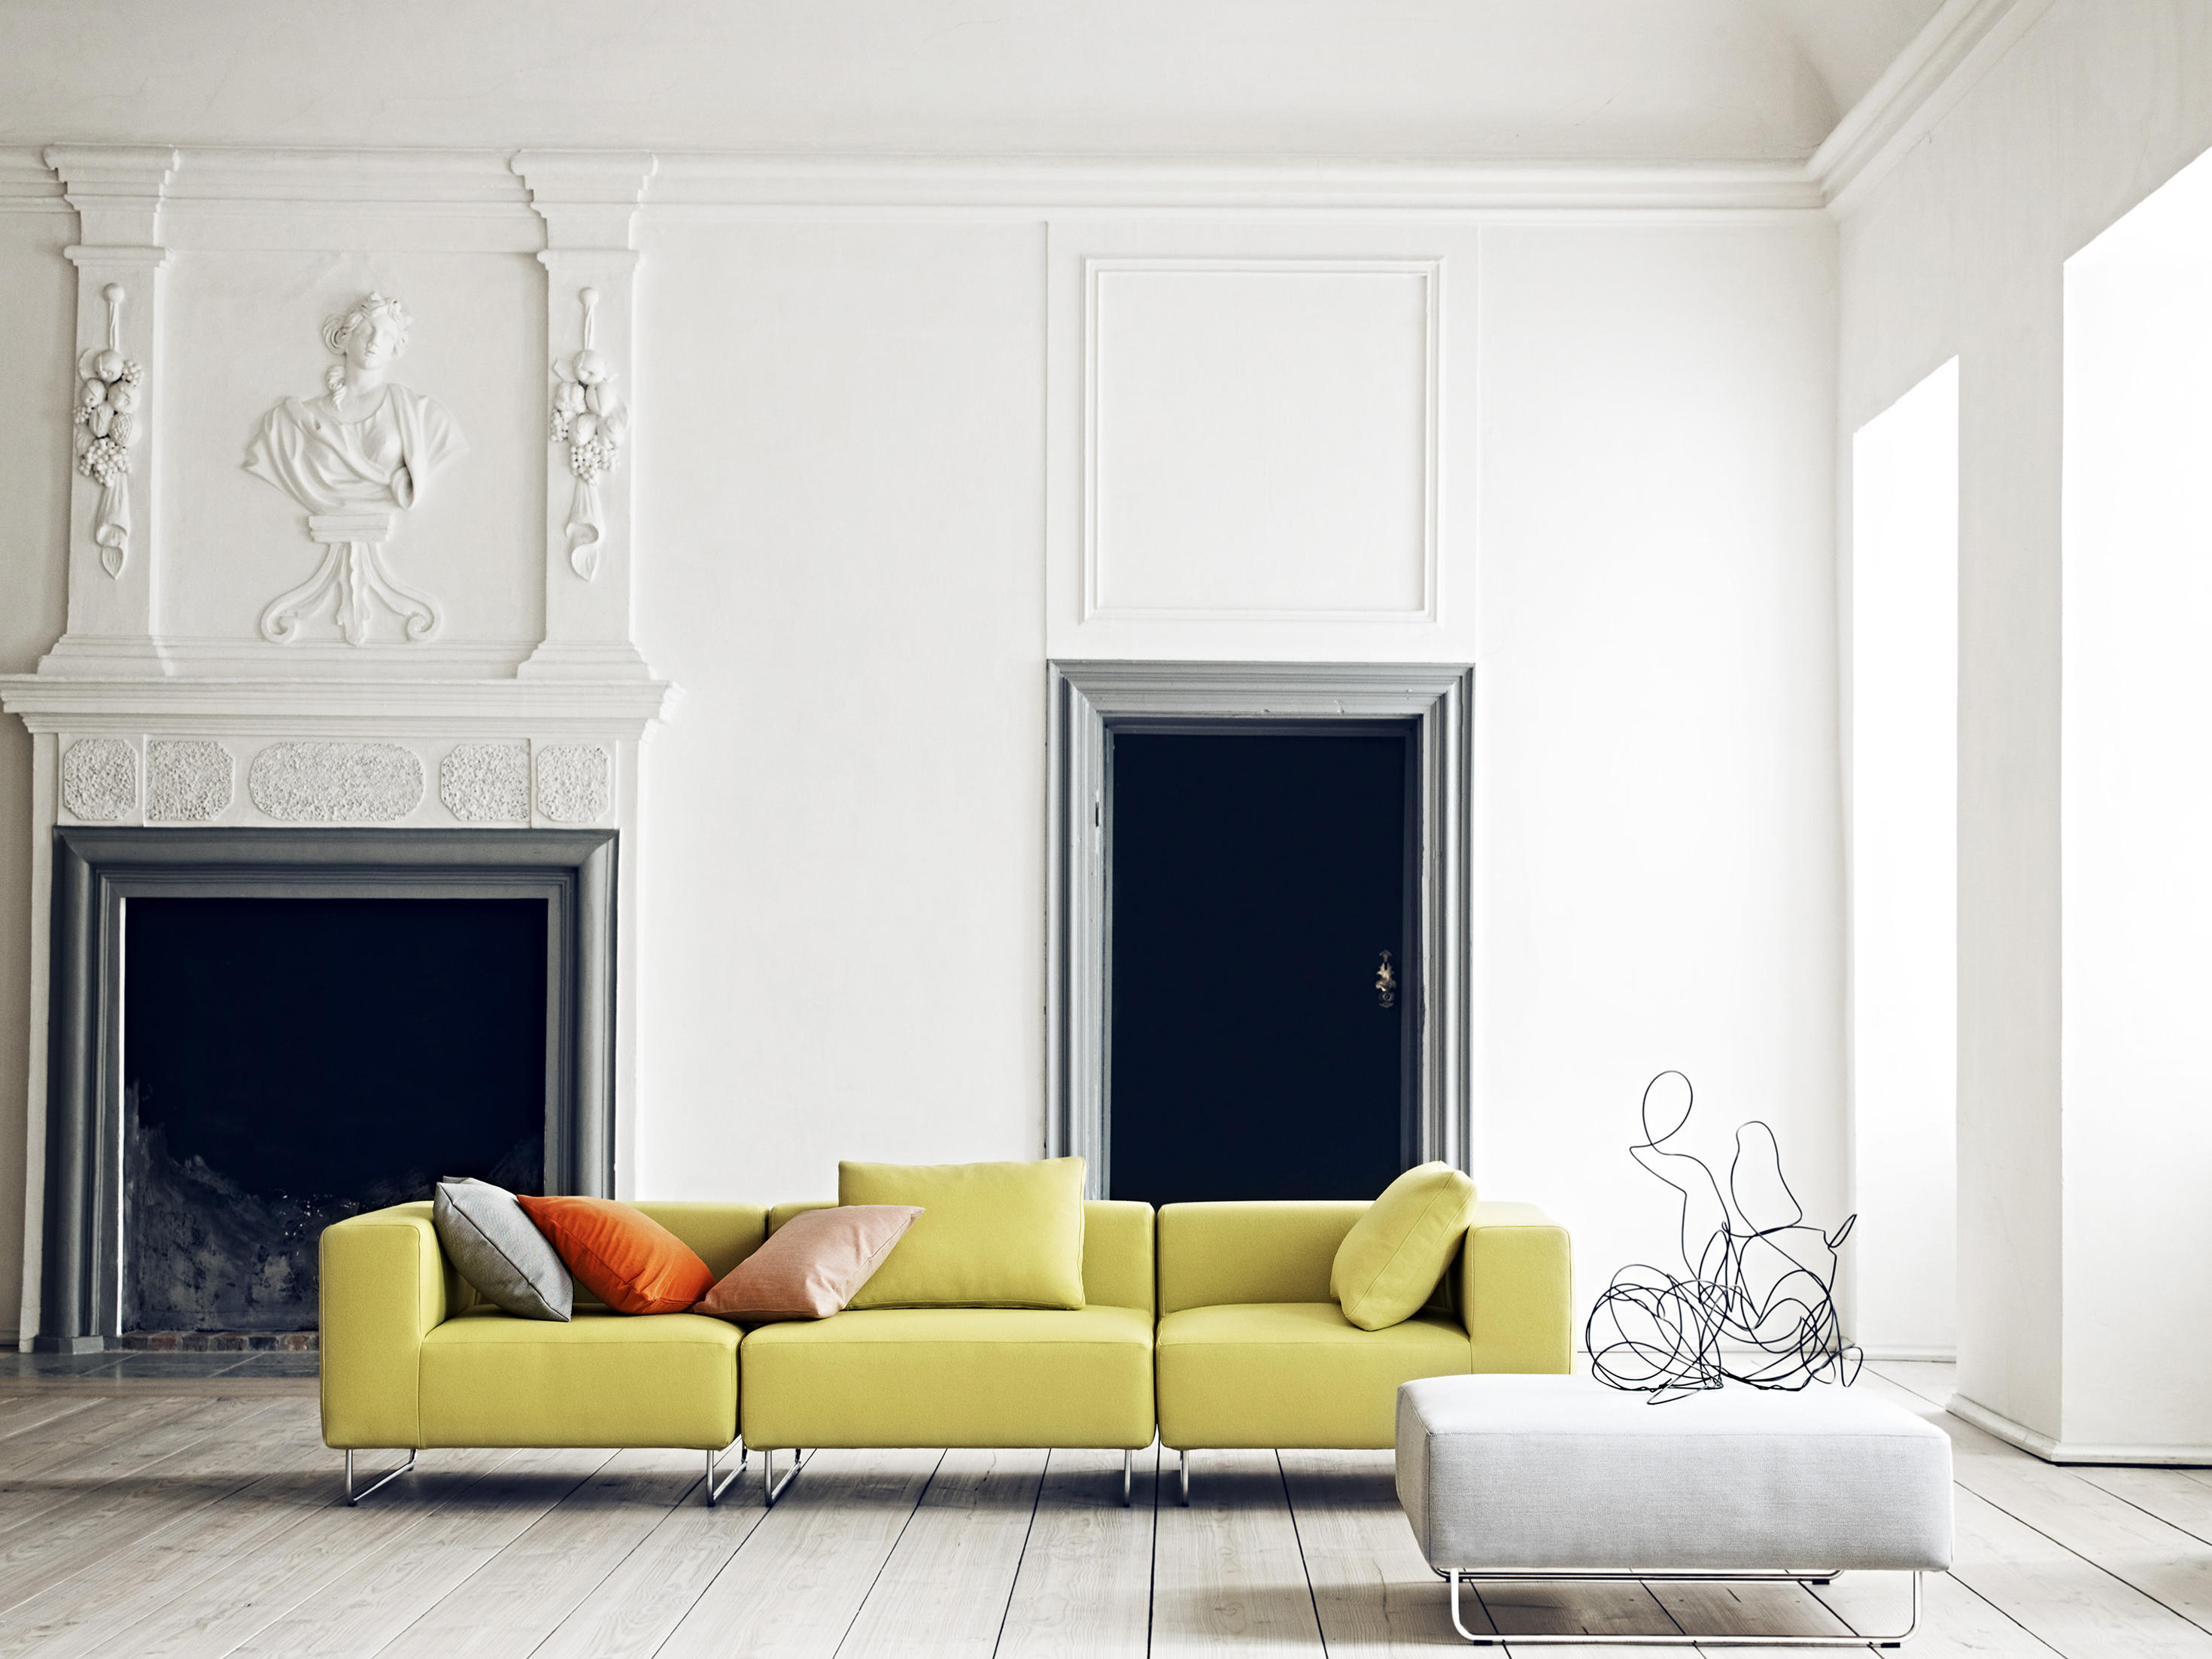 OHIO SOFA - Sofas from Softline A/S | Architonic